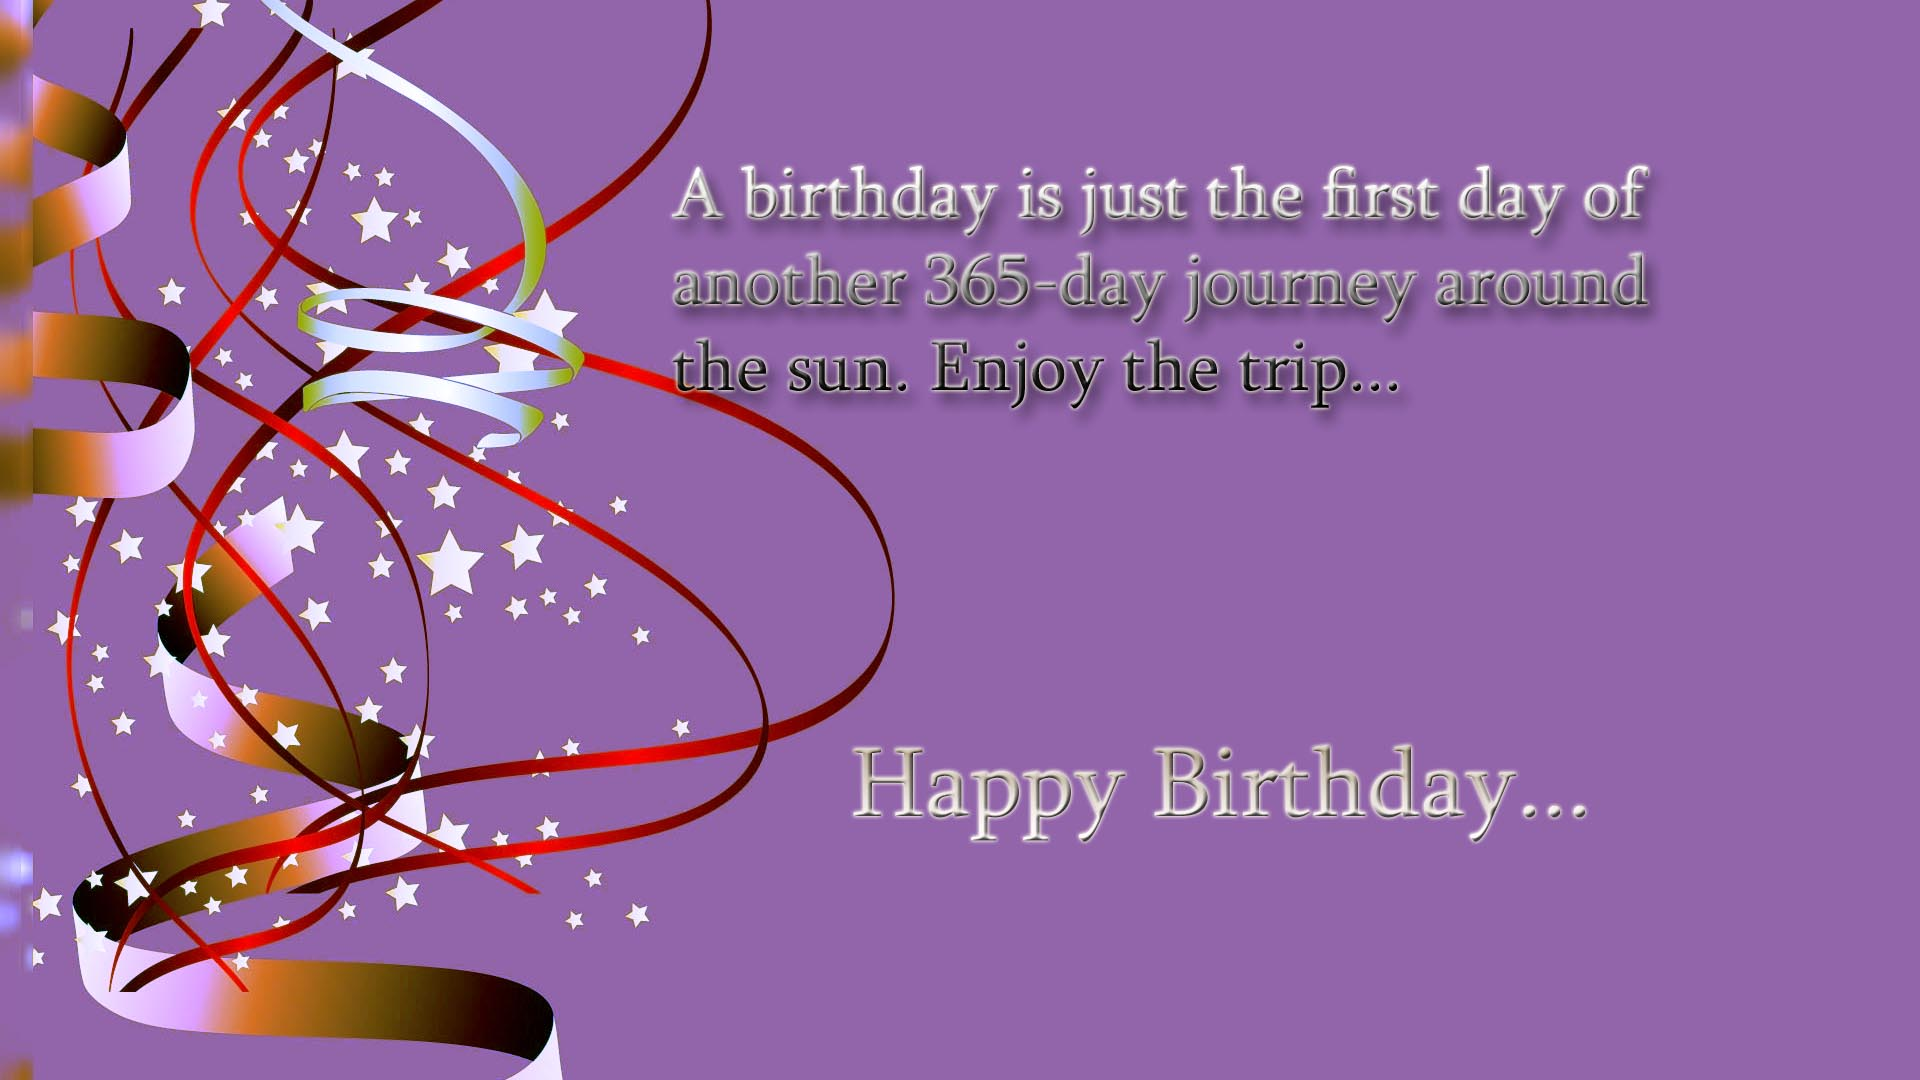 birthday hd images with quotes ; 6e18972f6f69c0a346bc68f45f849e21